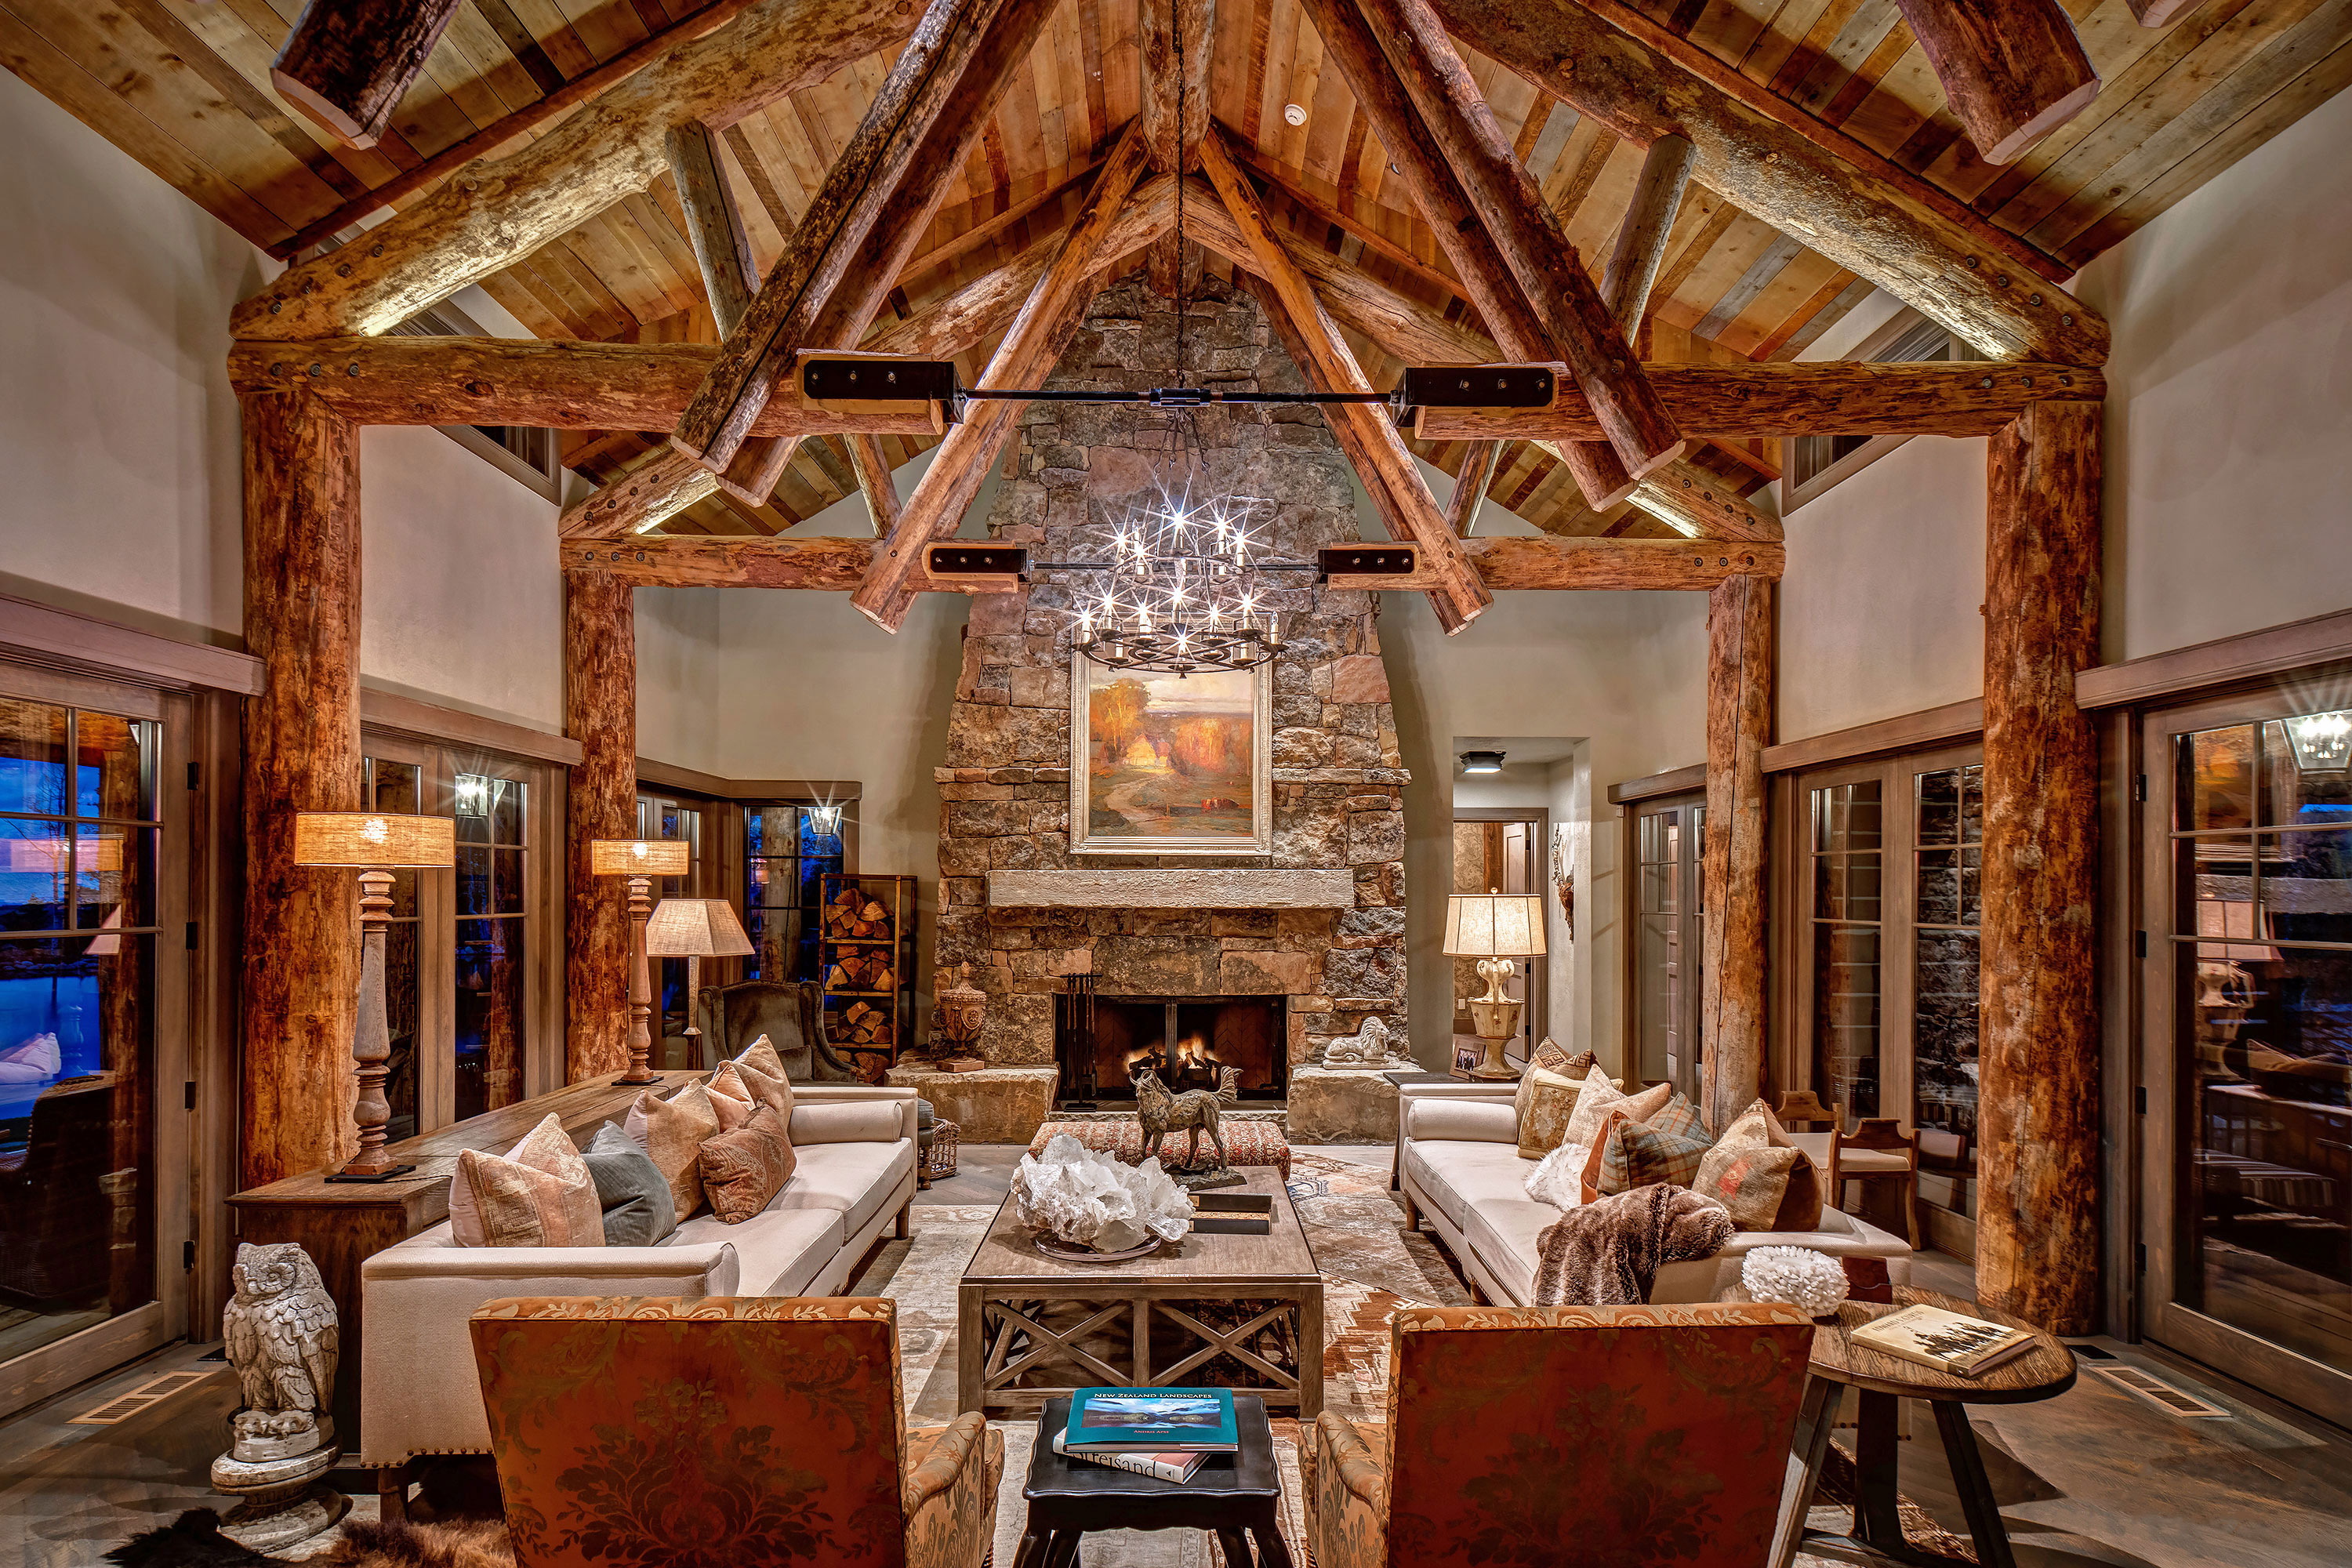 Mountain Estate Home - Park City, Utah. Architectural Photography by Alan Blakely.